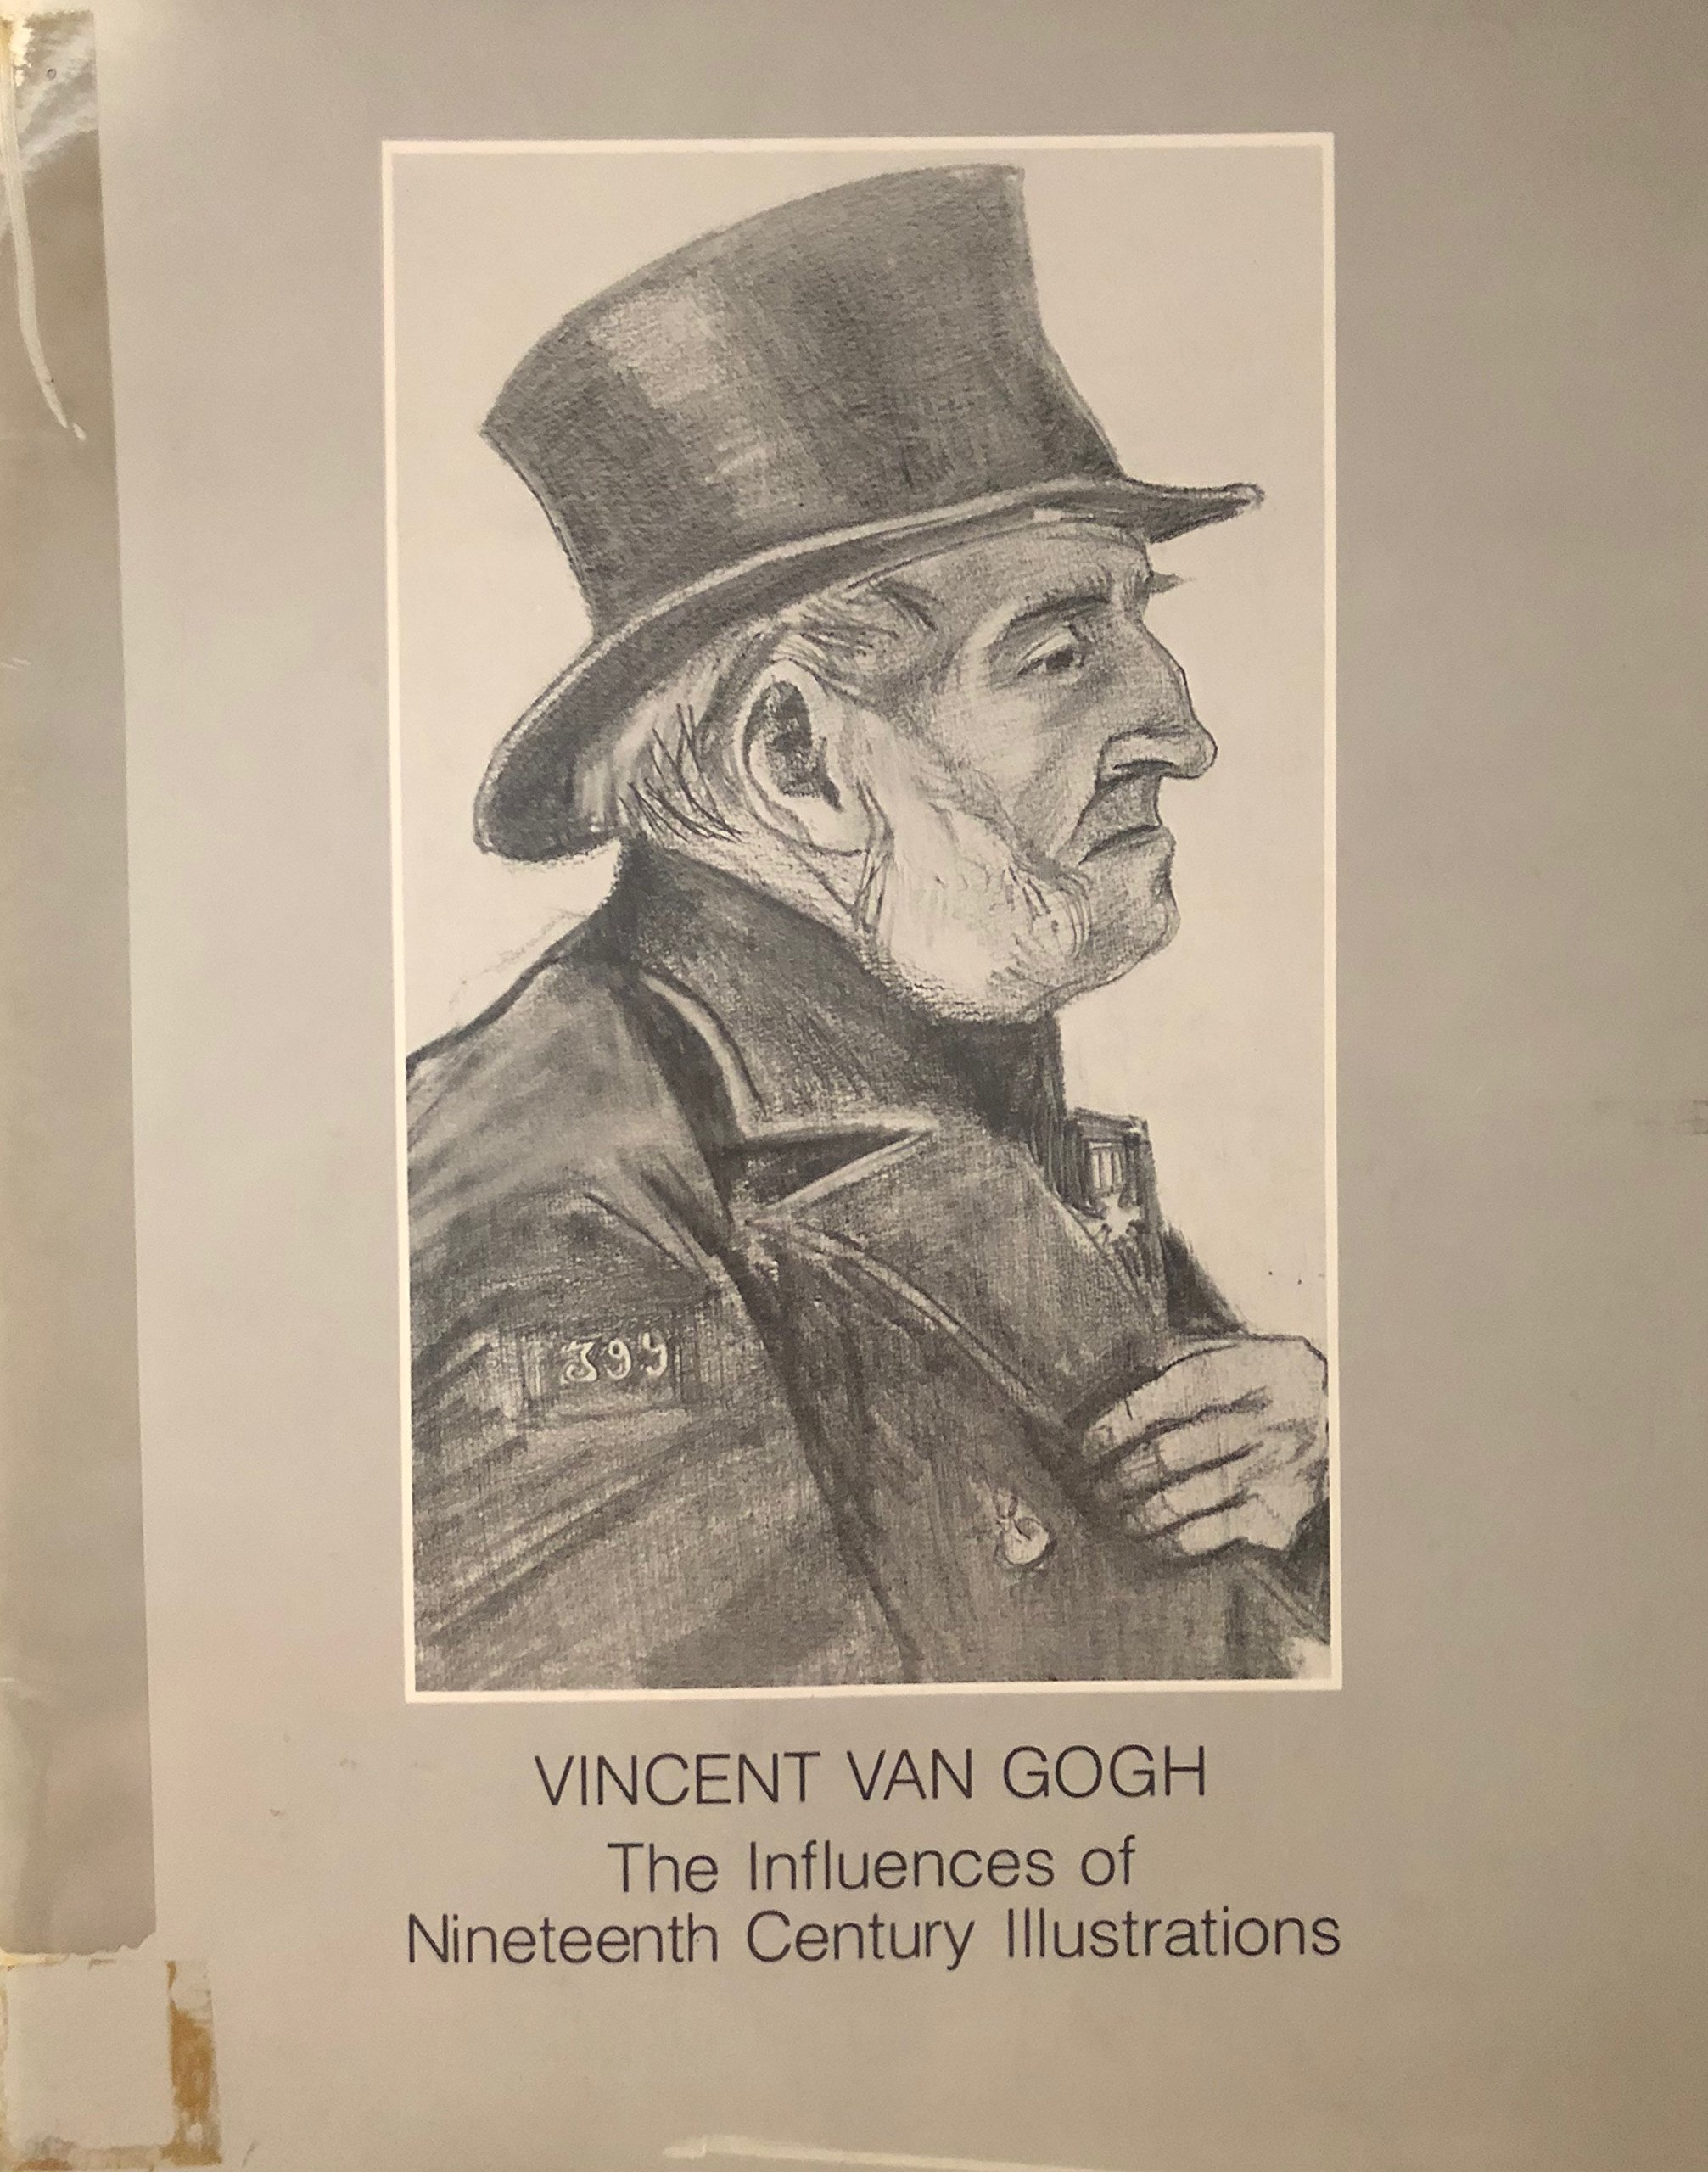 Vincent Van Gogh: The Influences of Nineteenth Century Illustrations